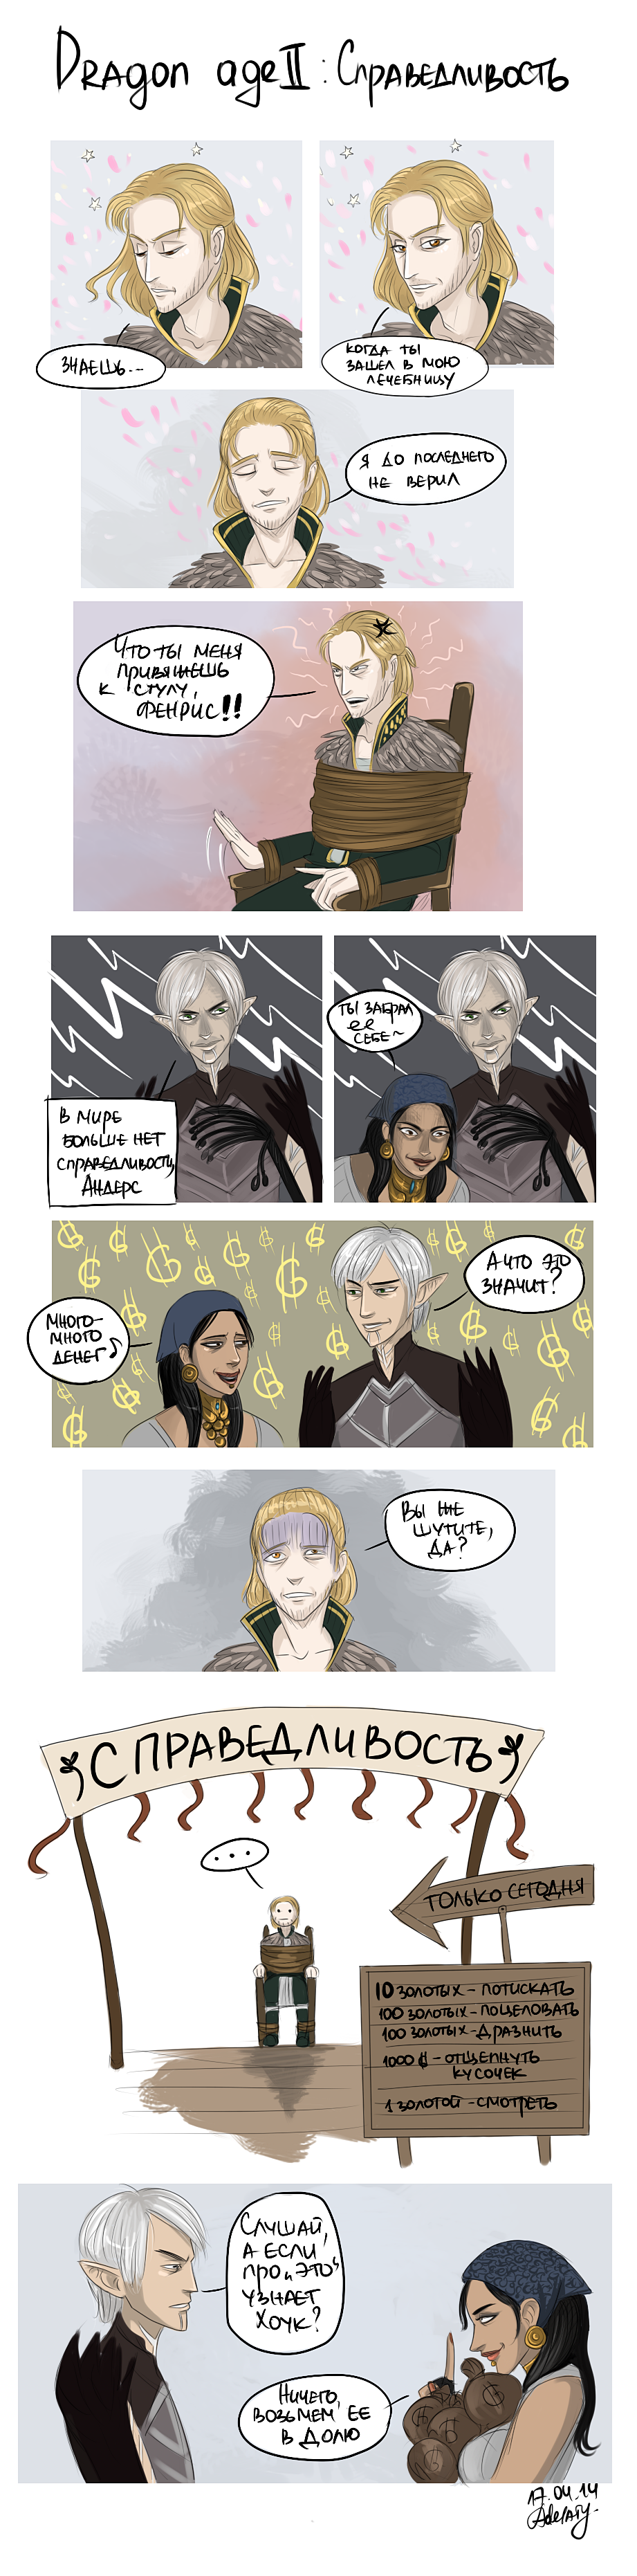 http://acomics.ru/upload/!c/Adelaiy/tales-al-world-dragon-age/000013-38ozporc1k.png